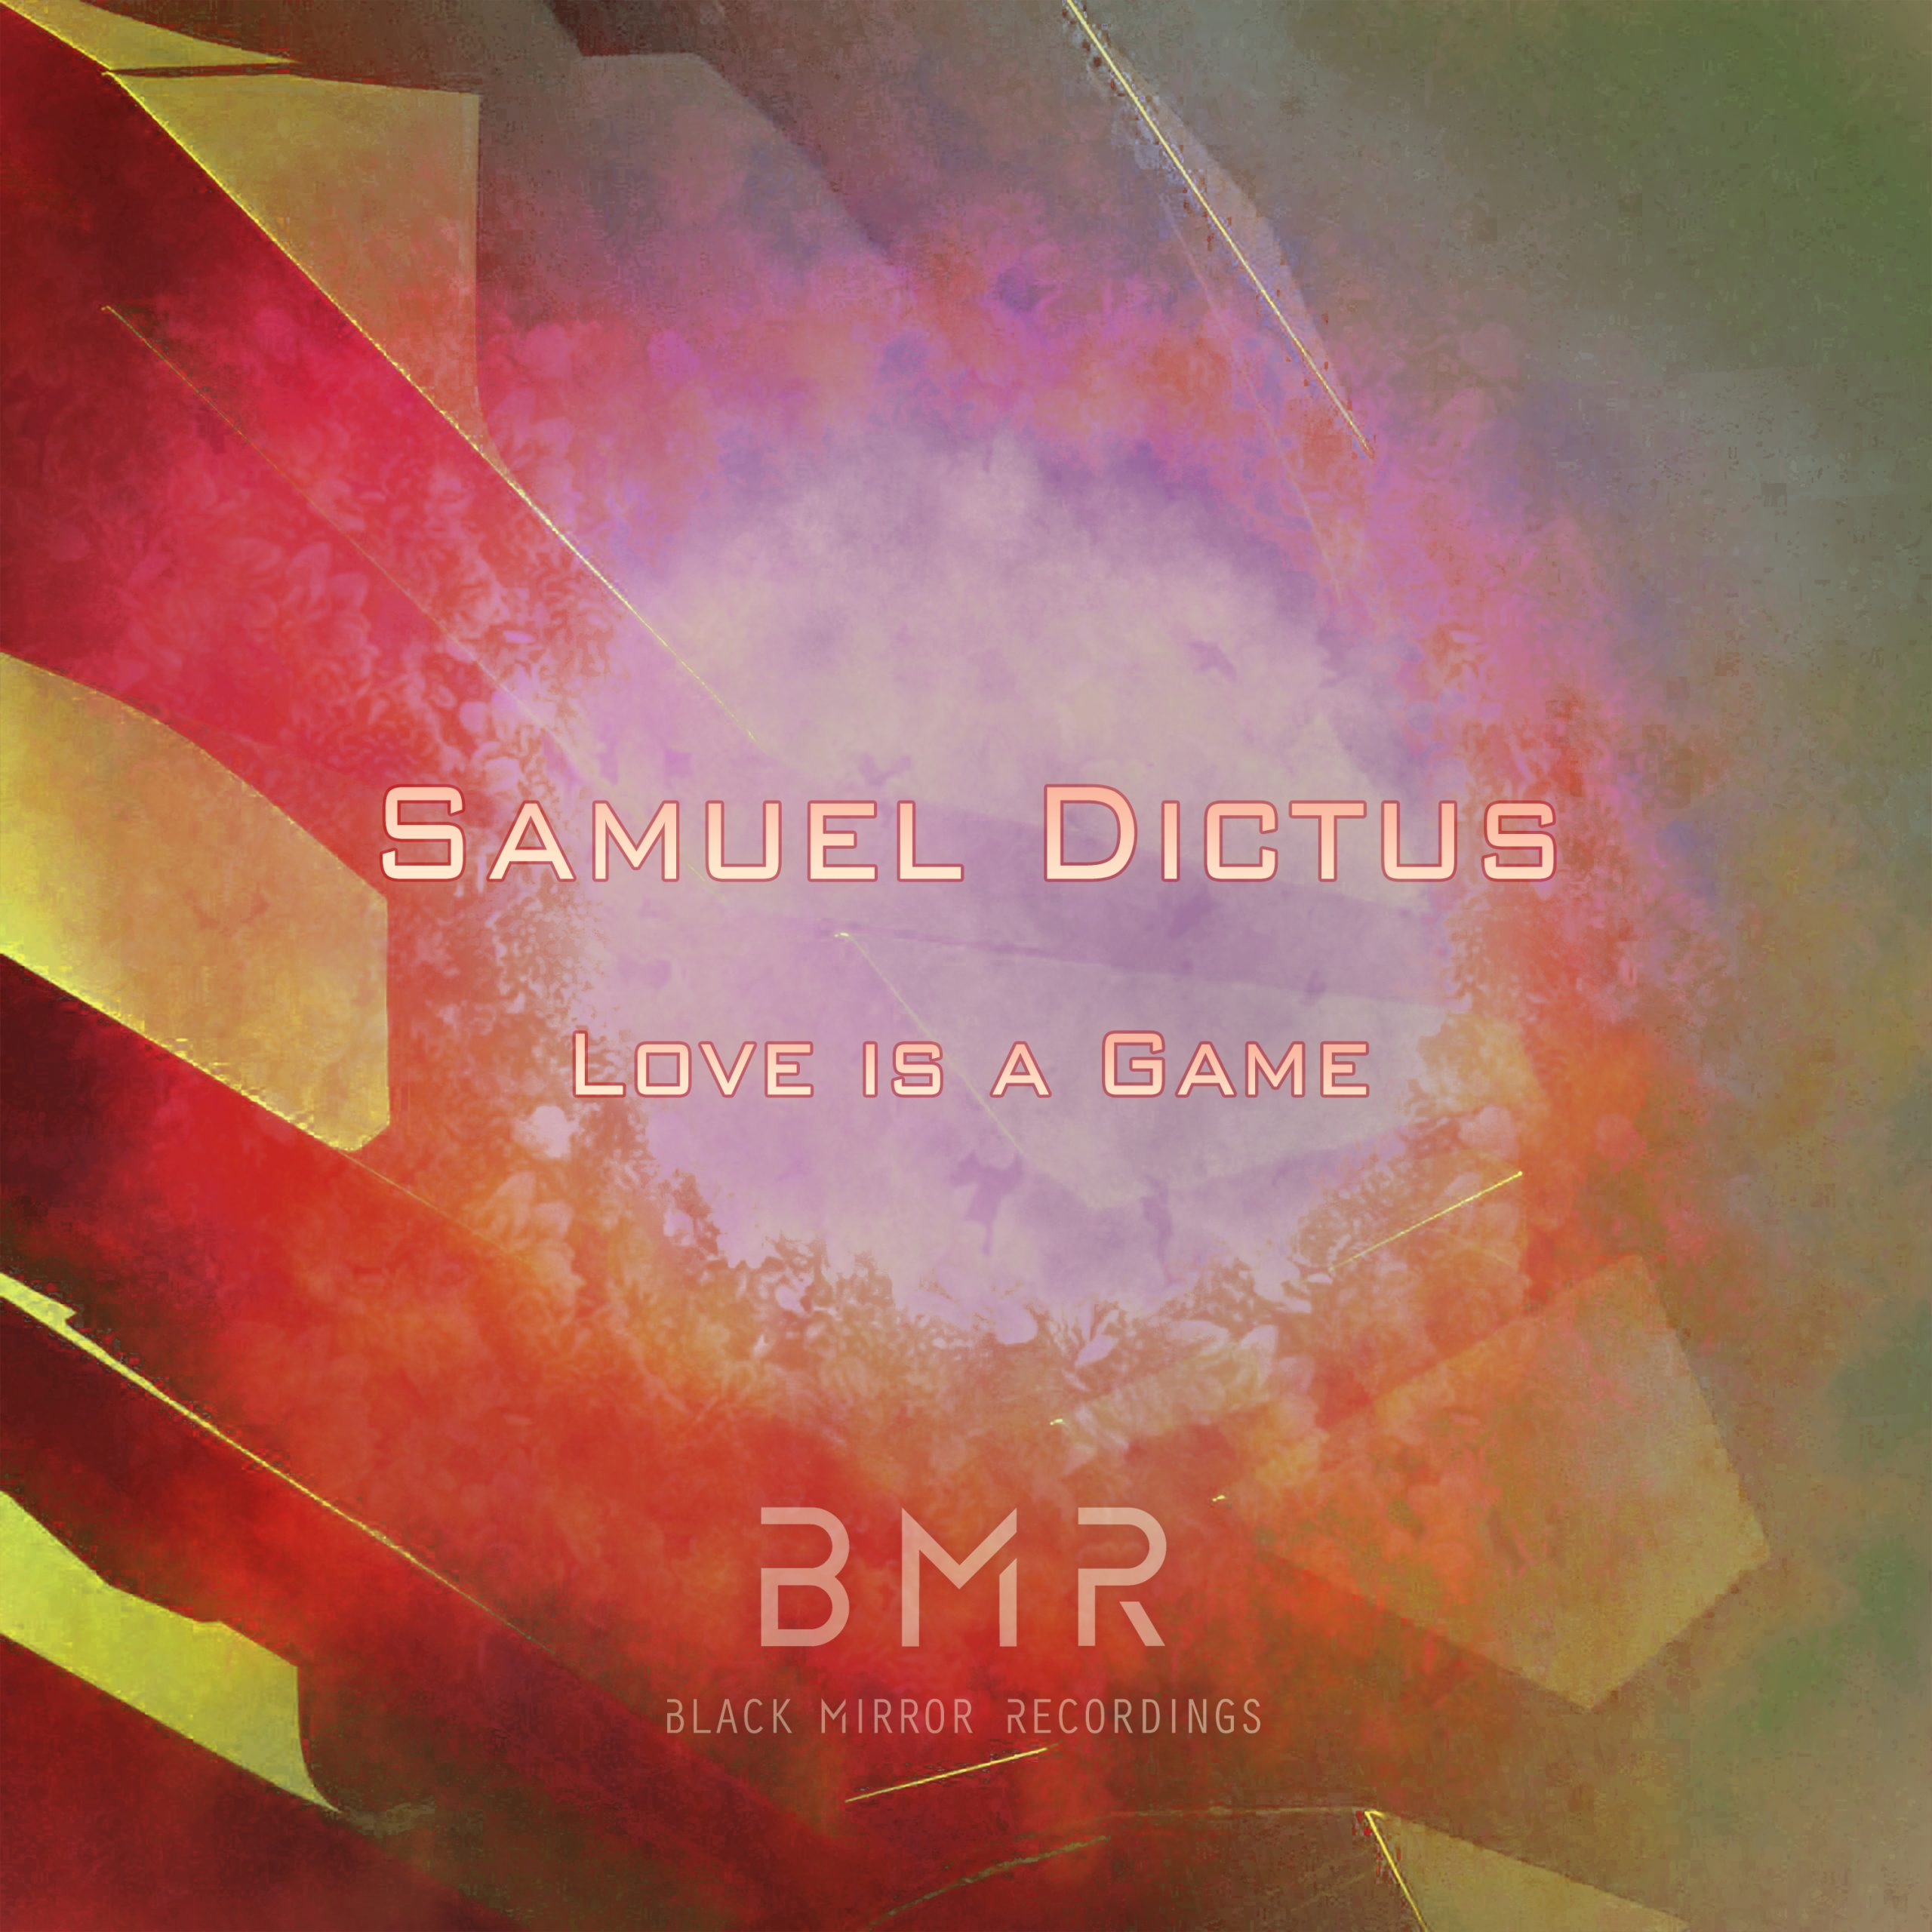 Samuel Dictus - Love is a Game